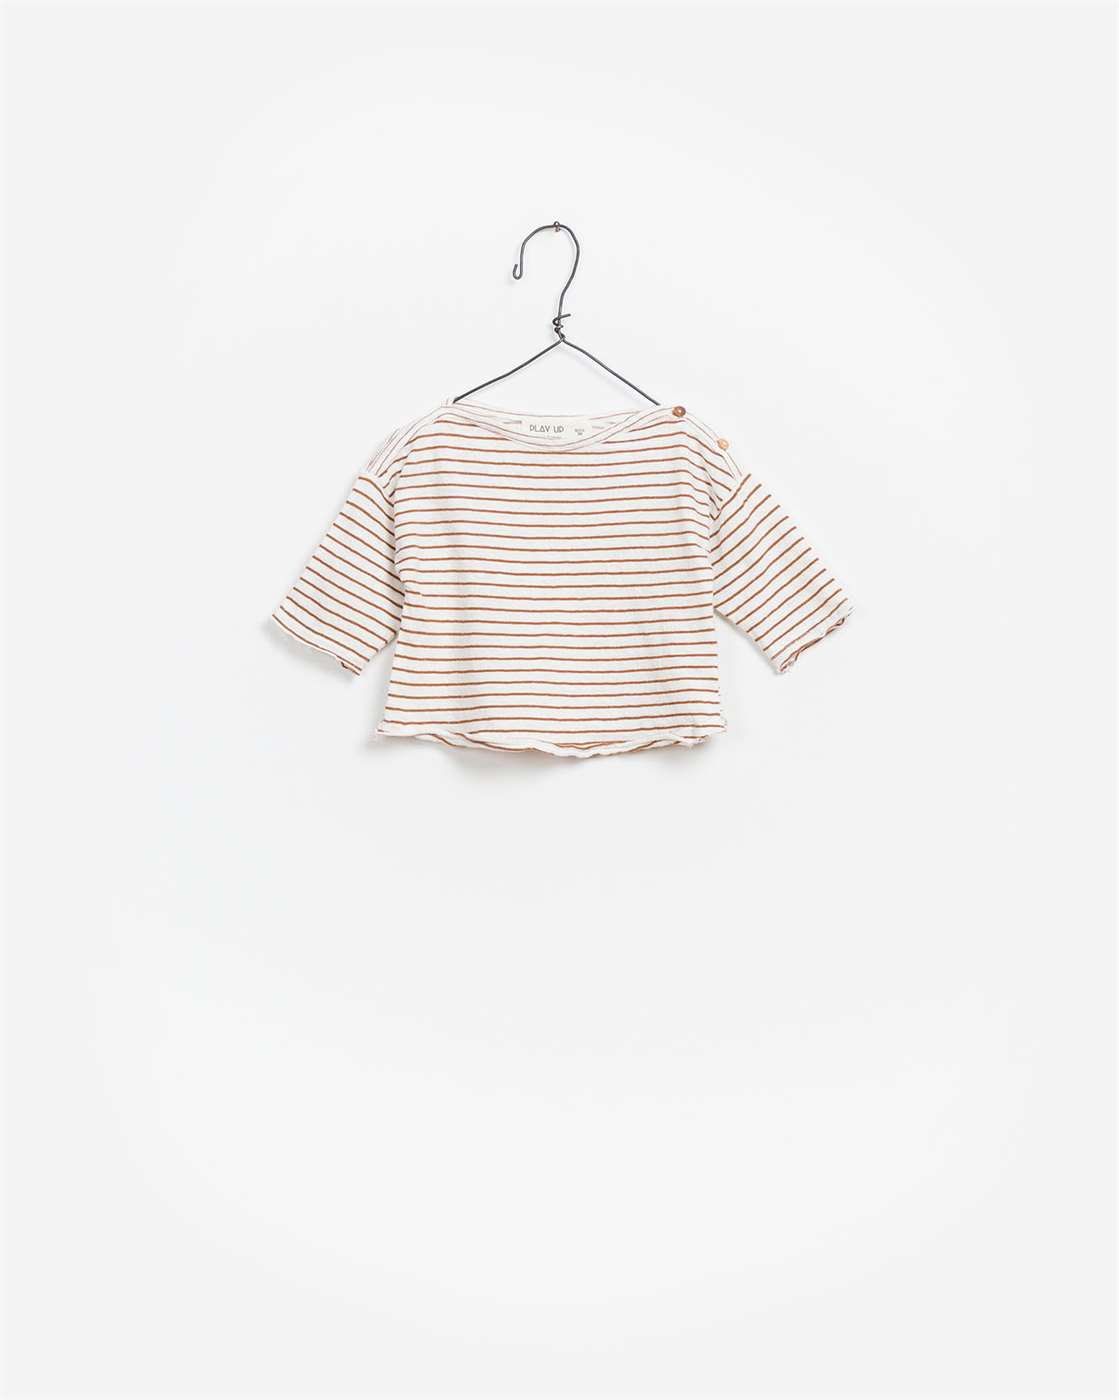 BeeBoo|BeeBoo PlayUp vêtements bébé baby clothes T Shirt LS Striped coton lin cotton linen